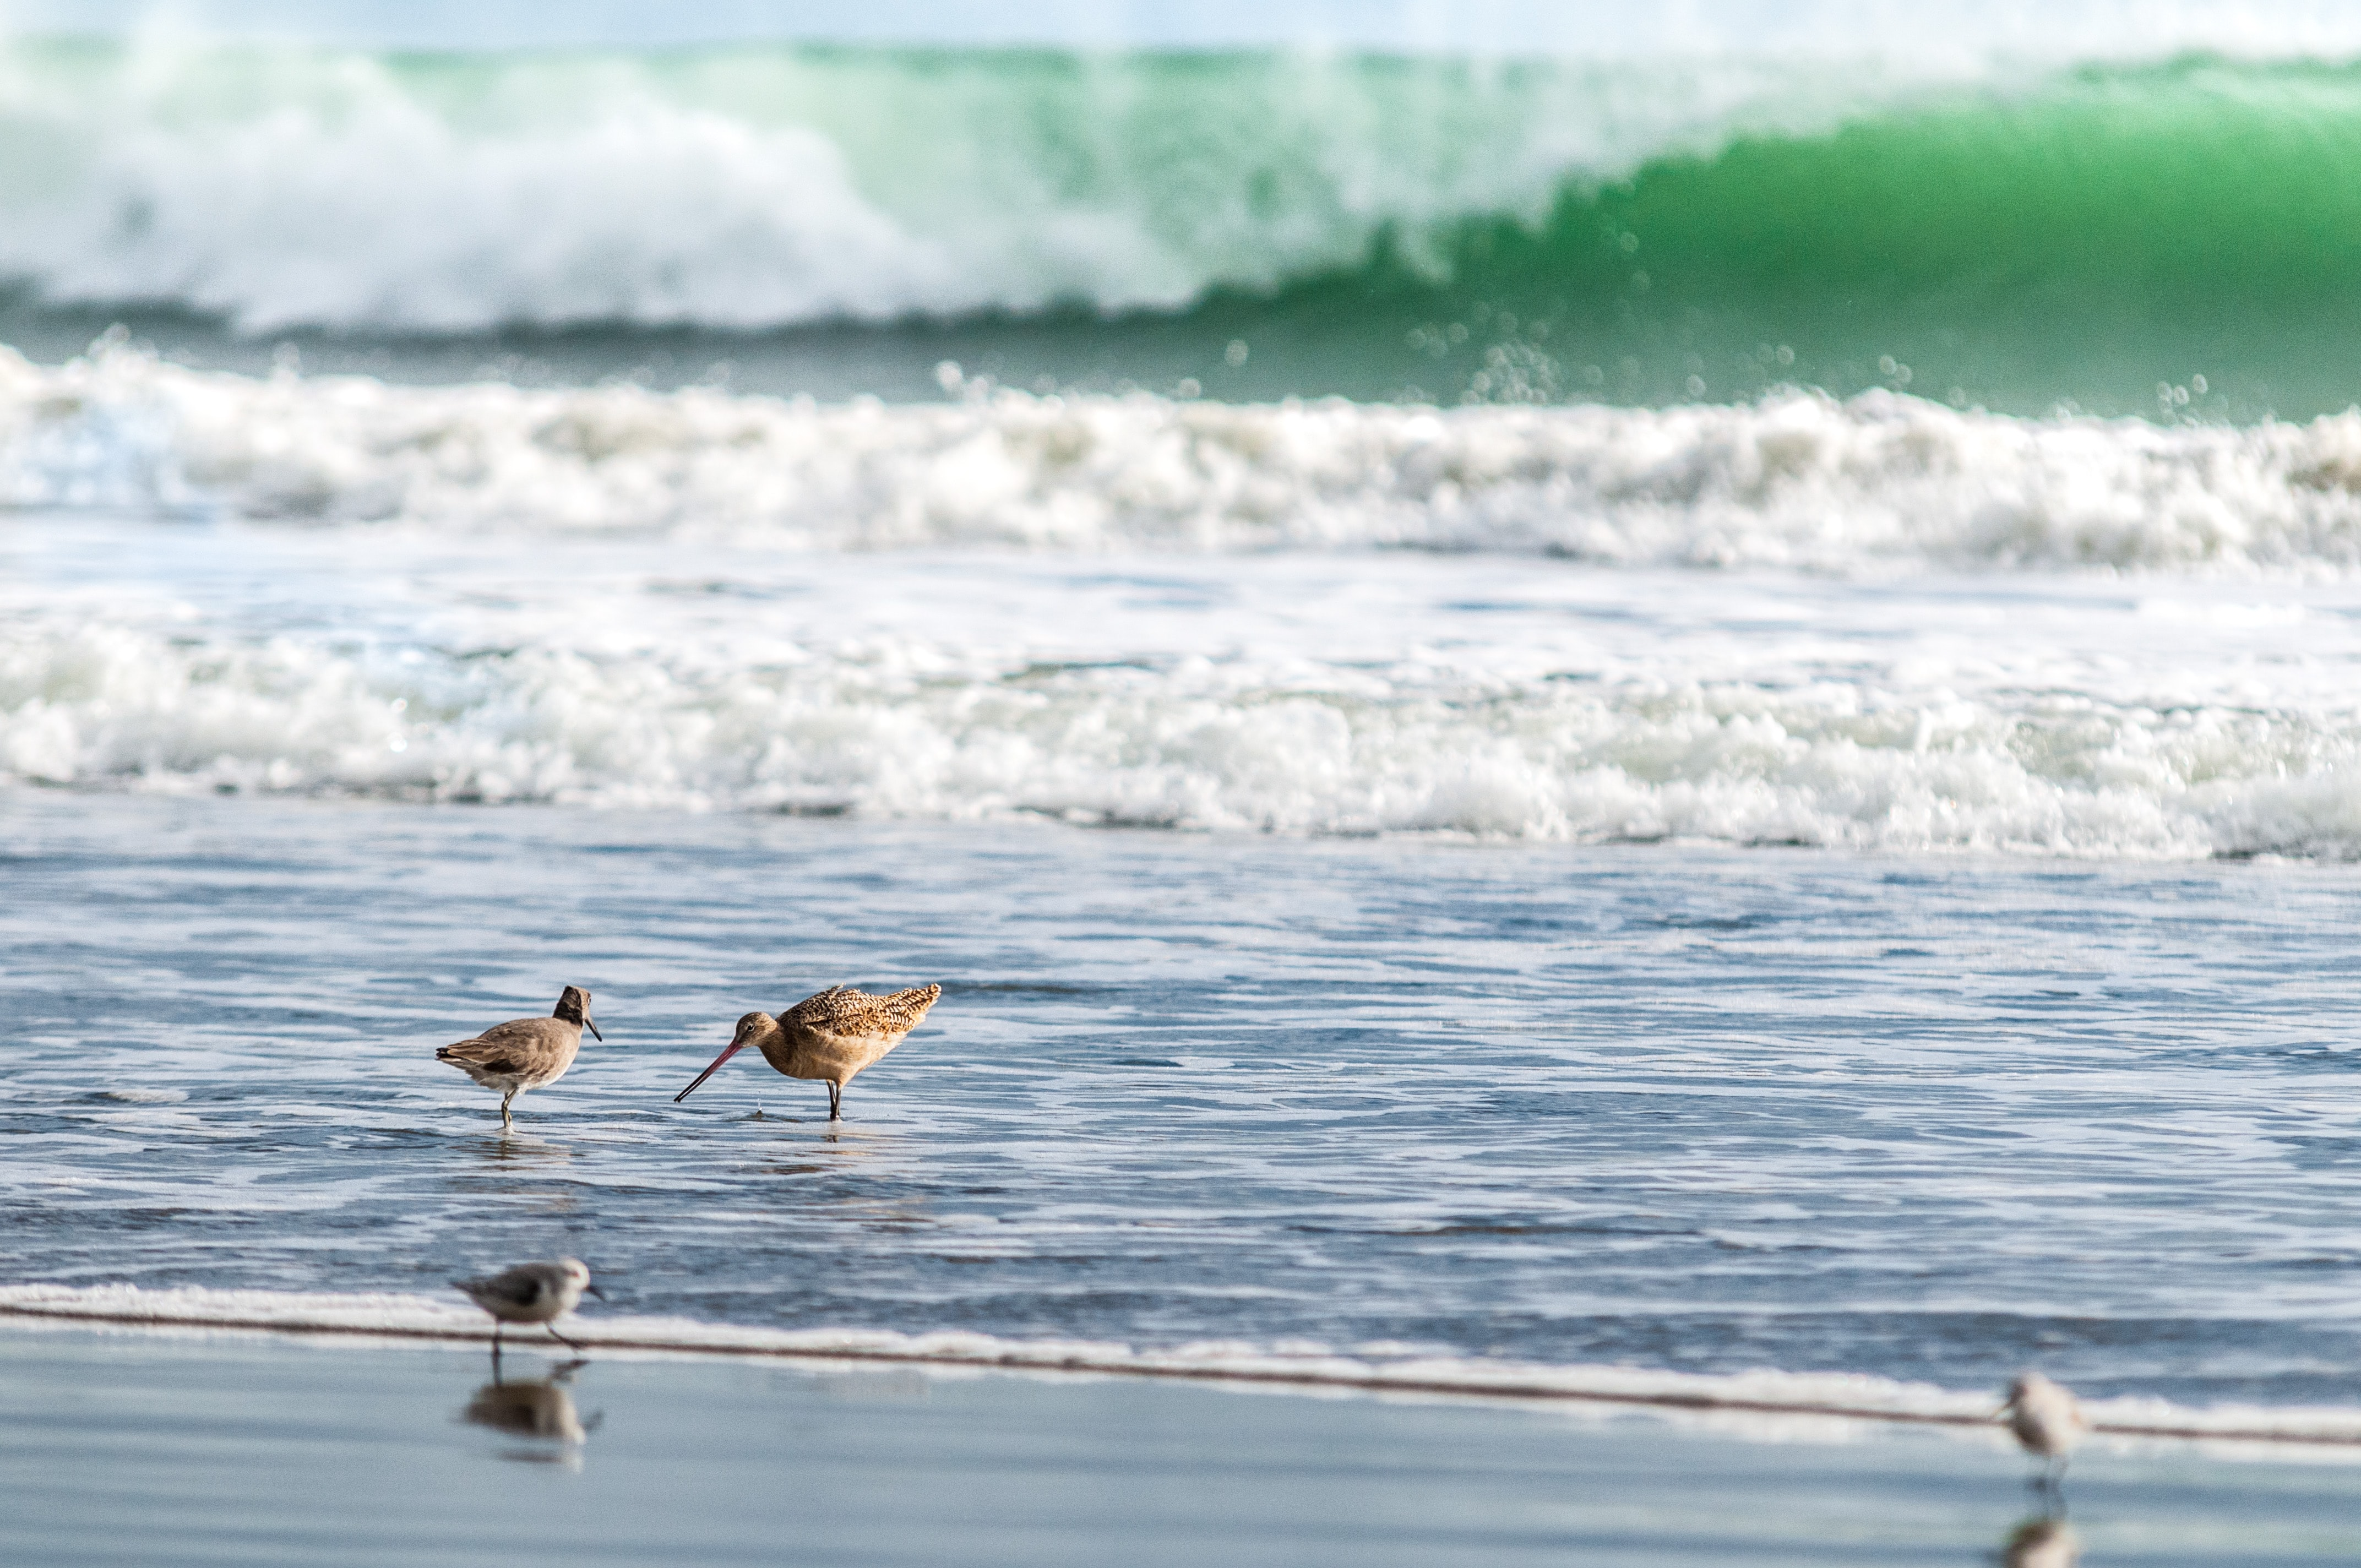 Sandpipers looking for food in the shallow water on a beach